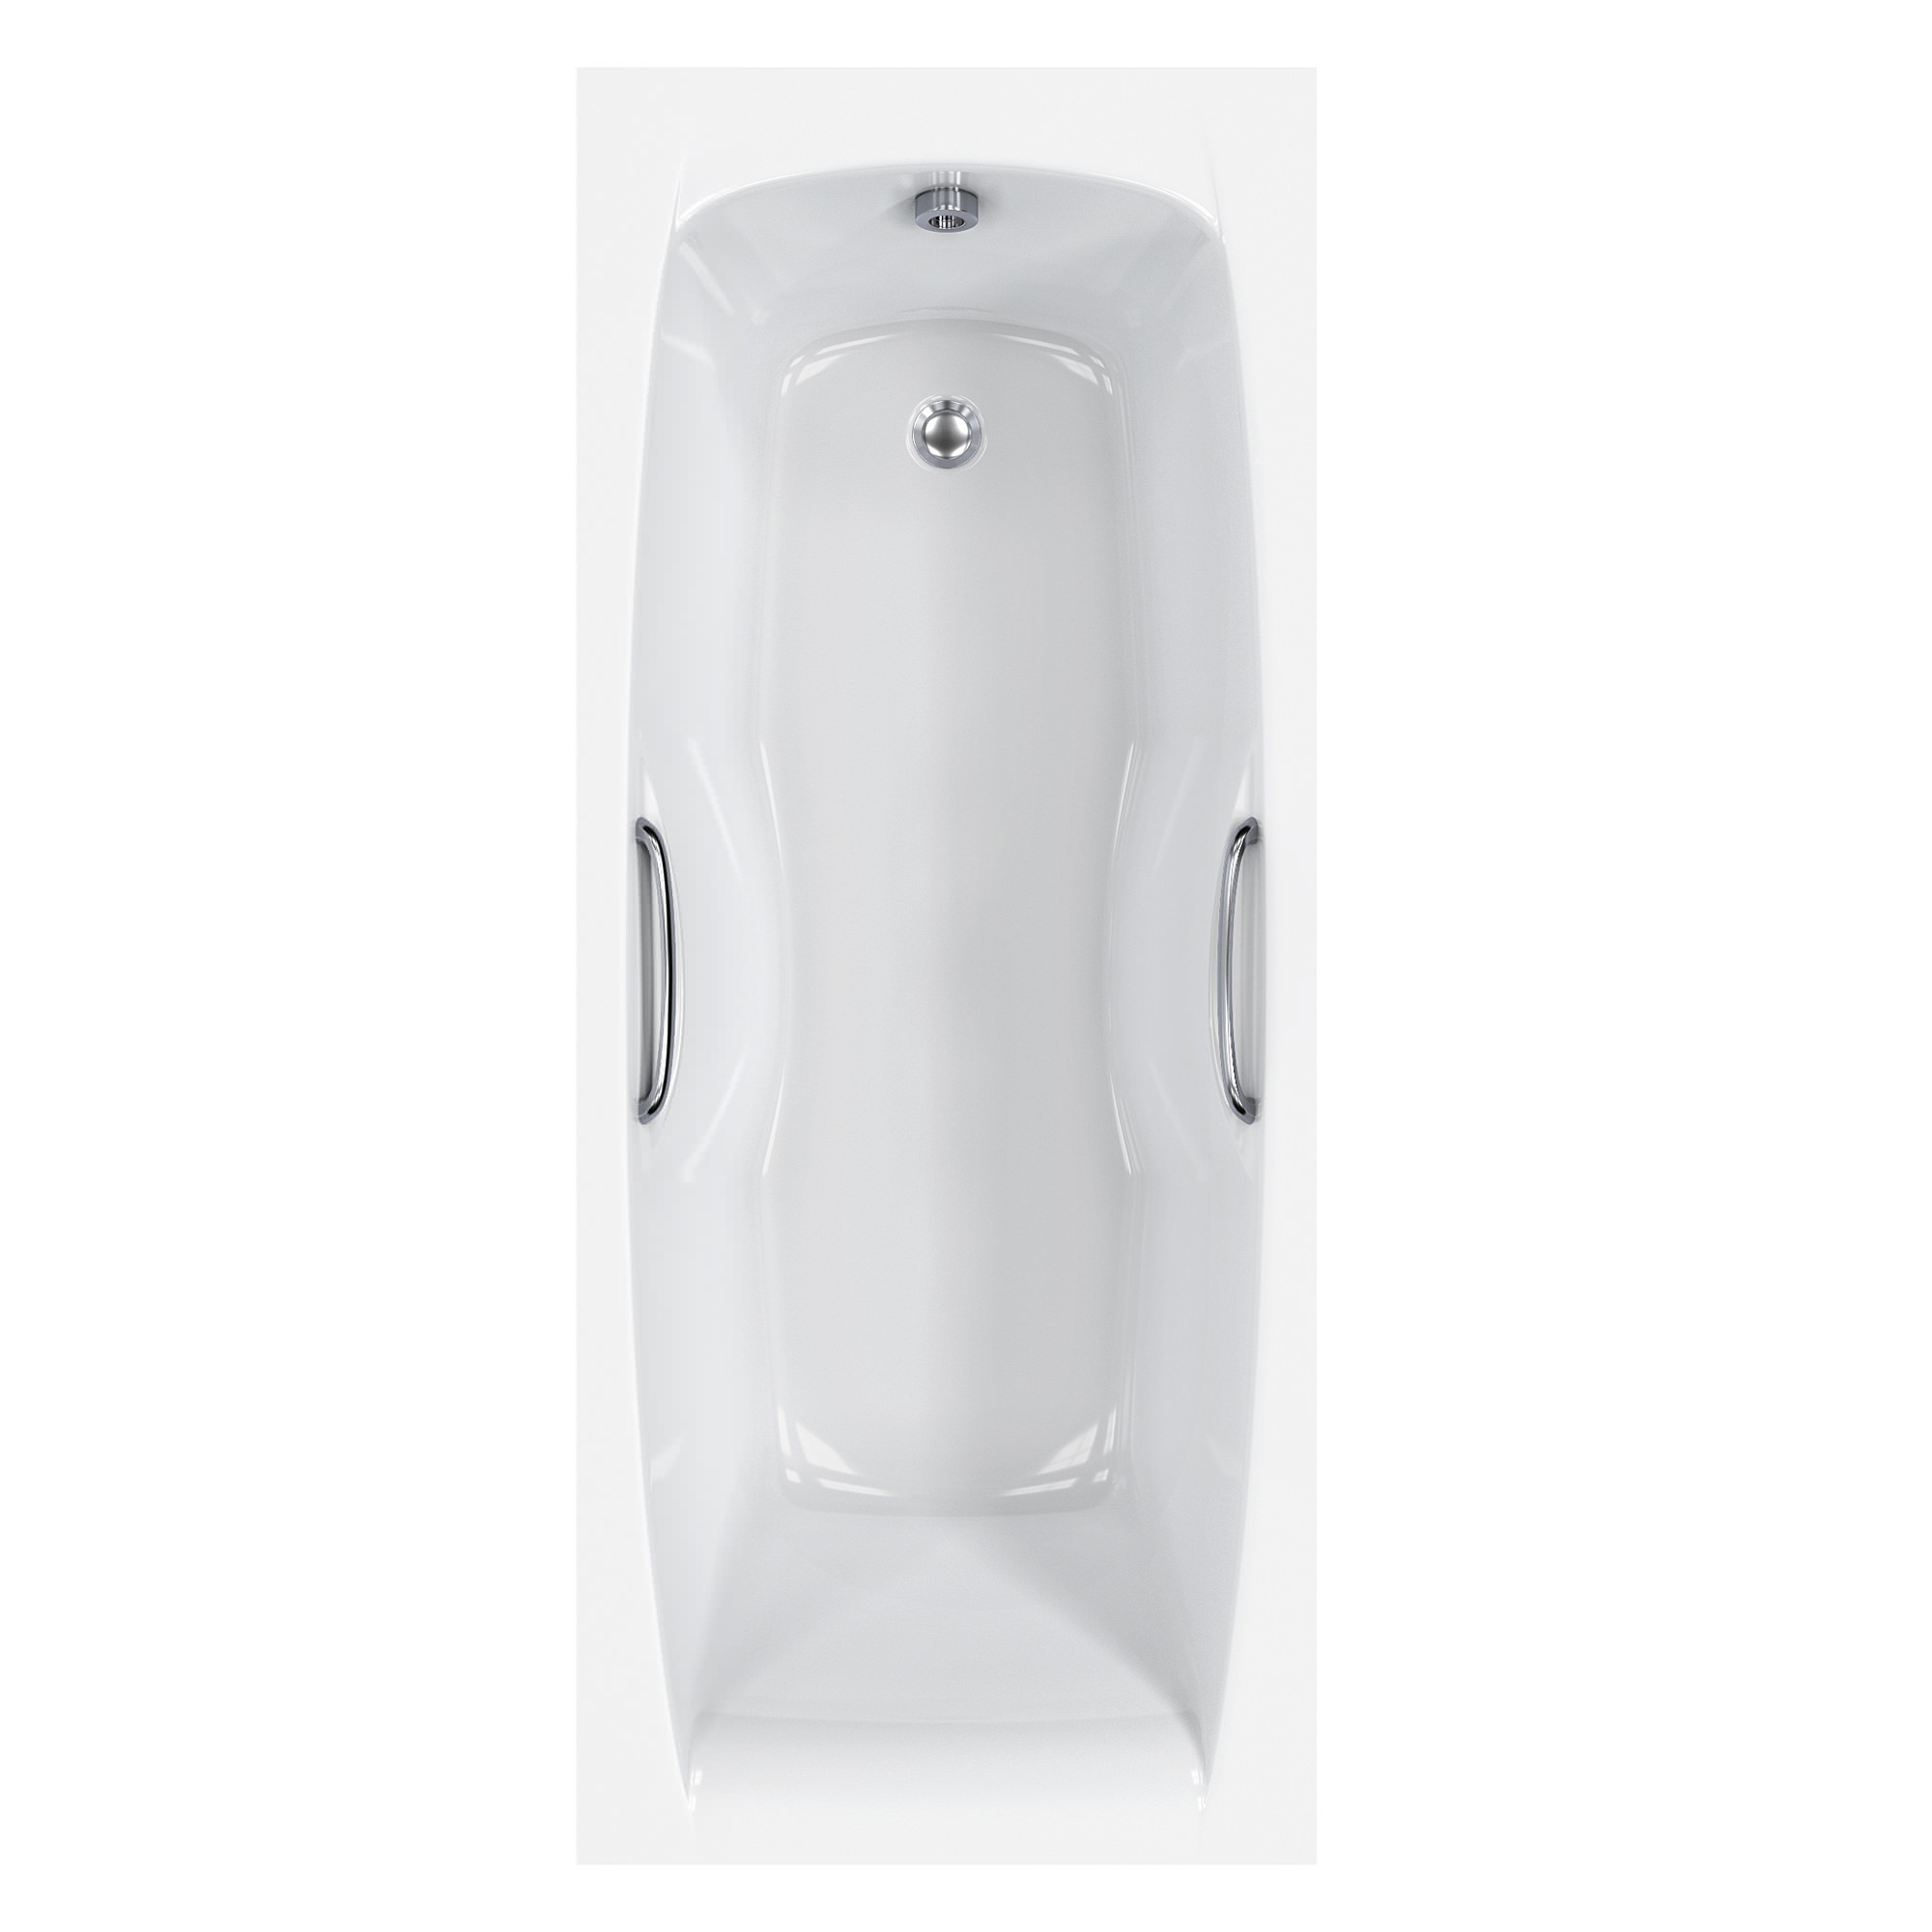 Carron Imperial 5mm Acrylic Bath With Grips 1700 X 700mm